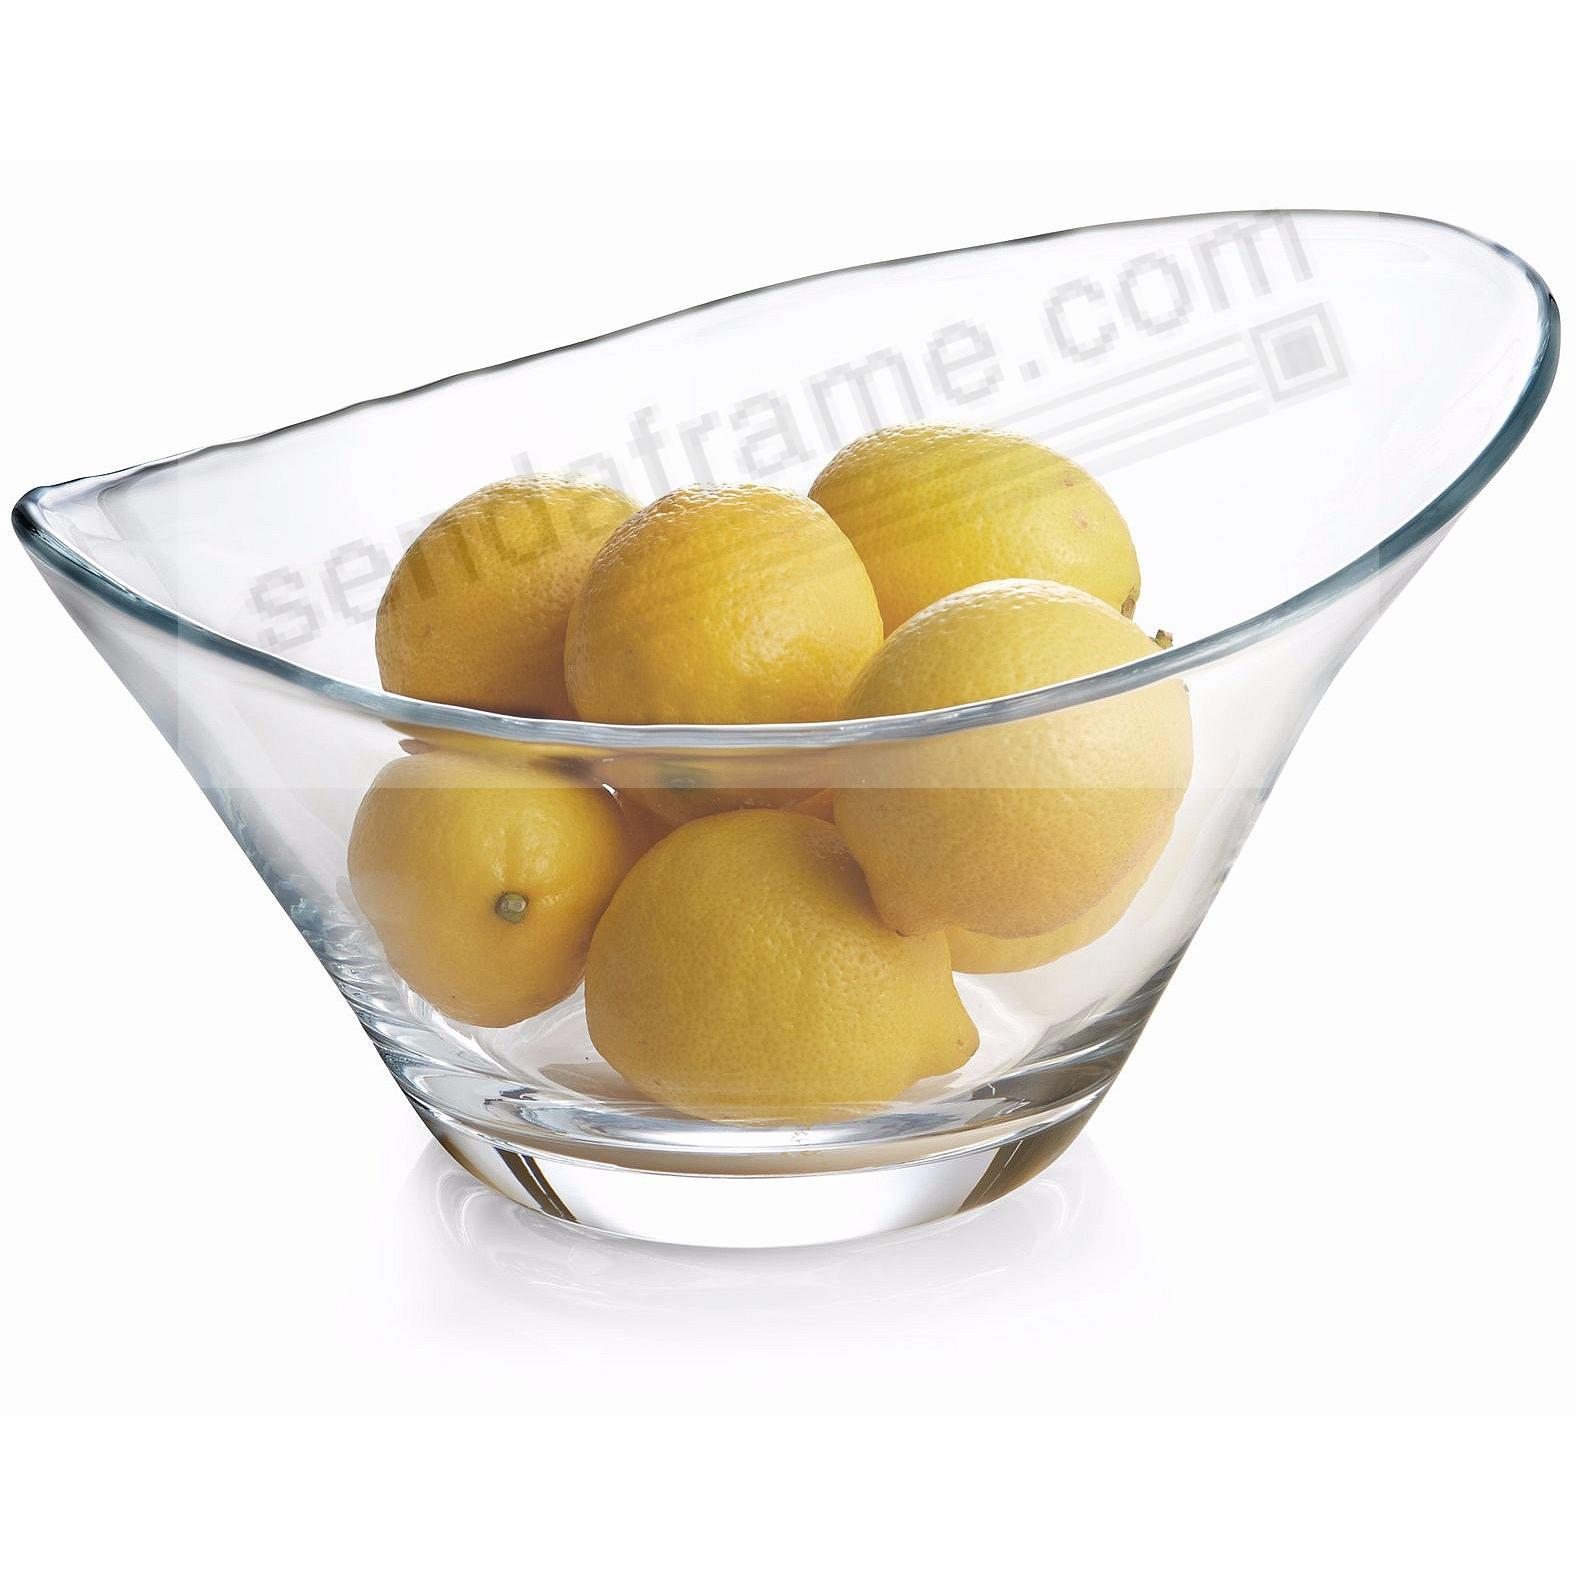 The MODERNE GLASS 12-inch SALAD BOWL by Nambe®